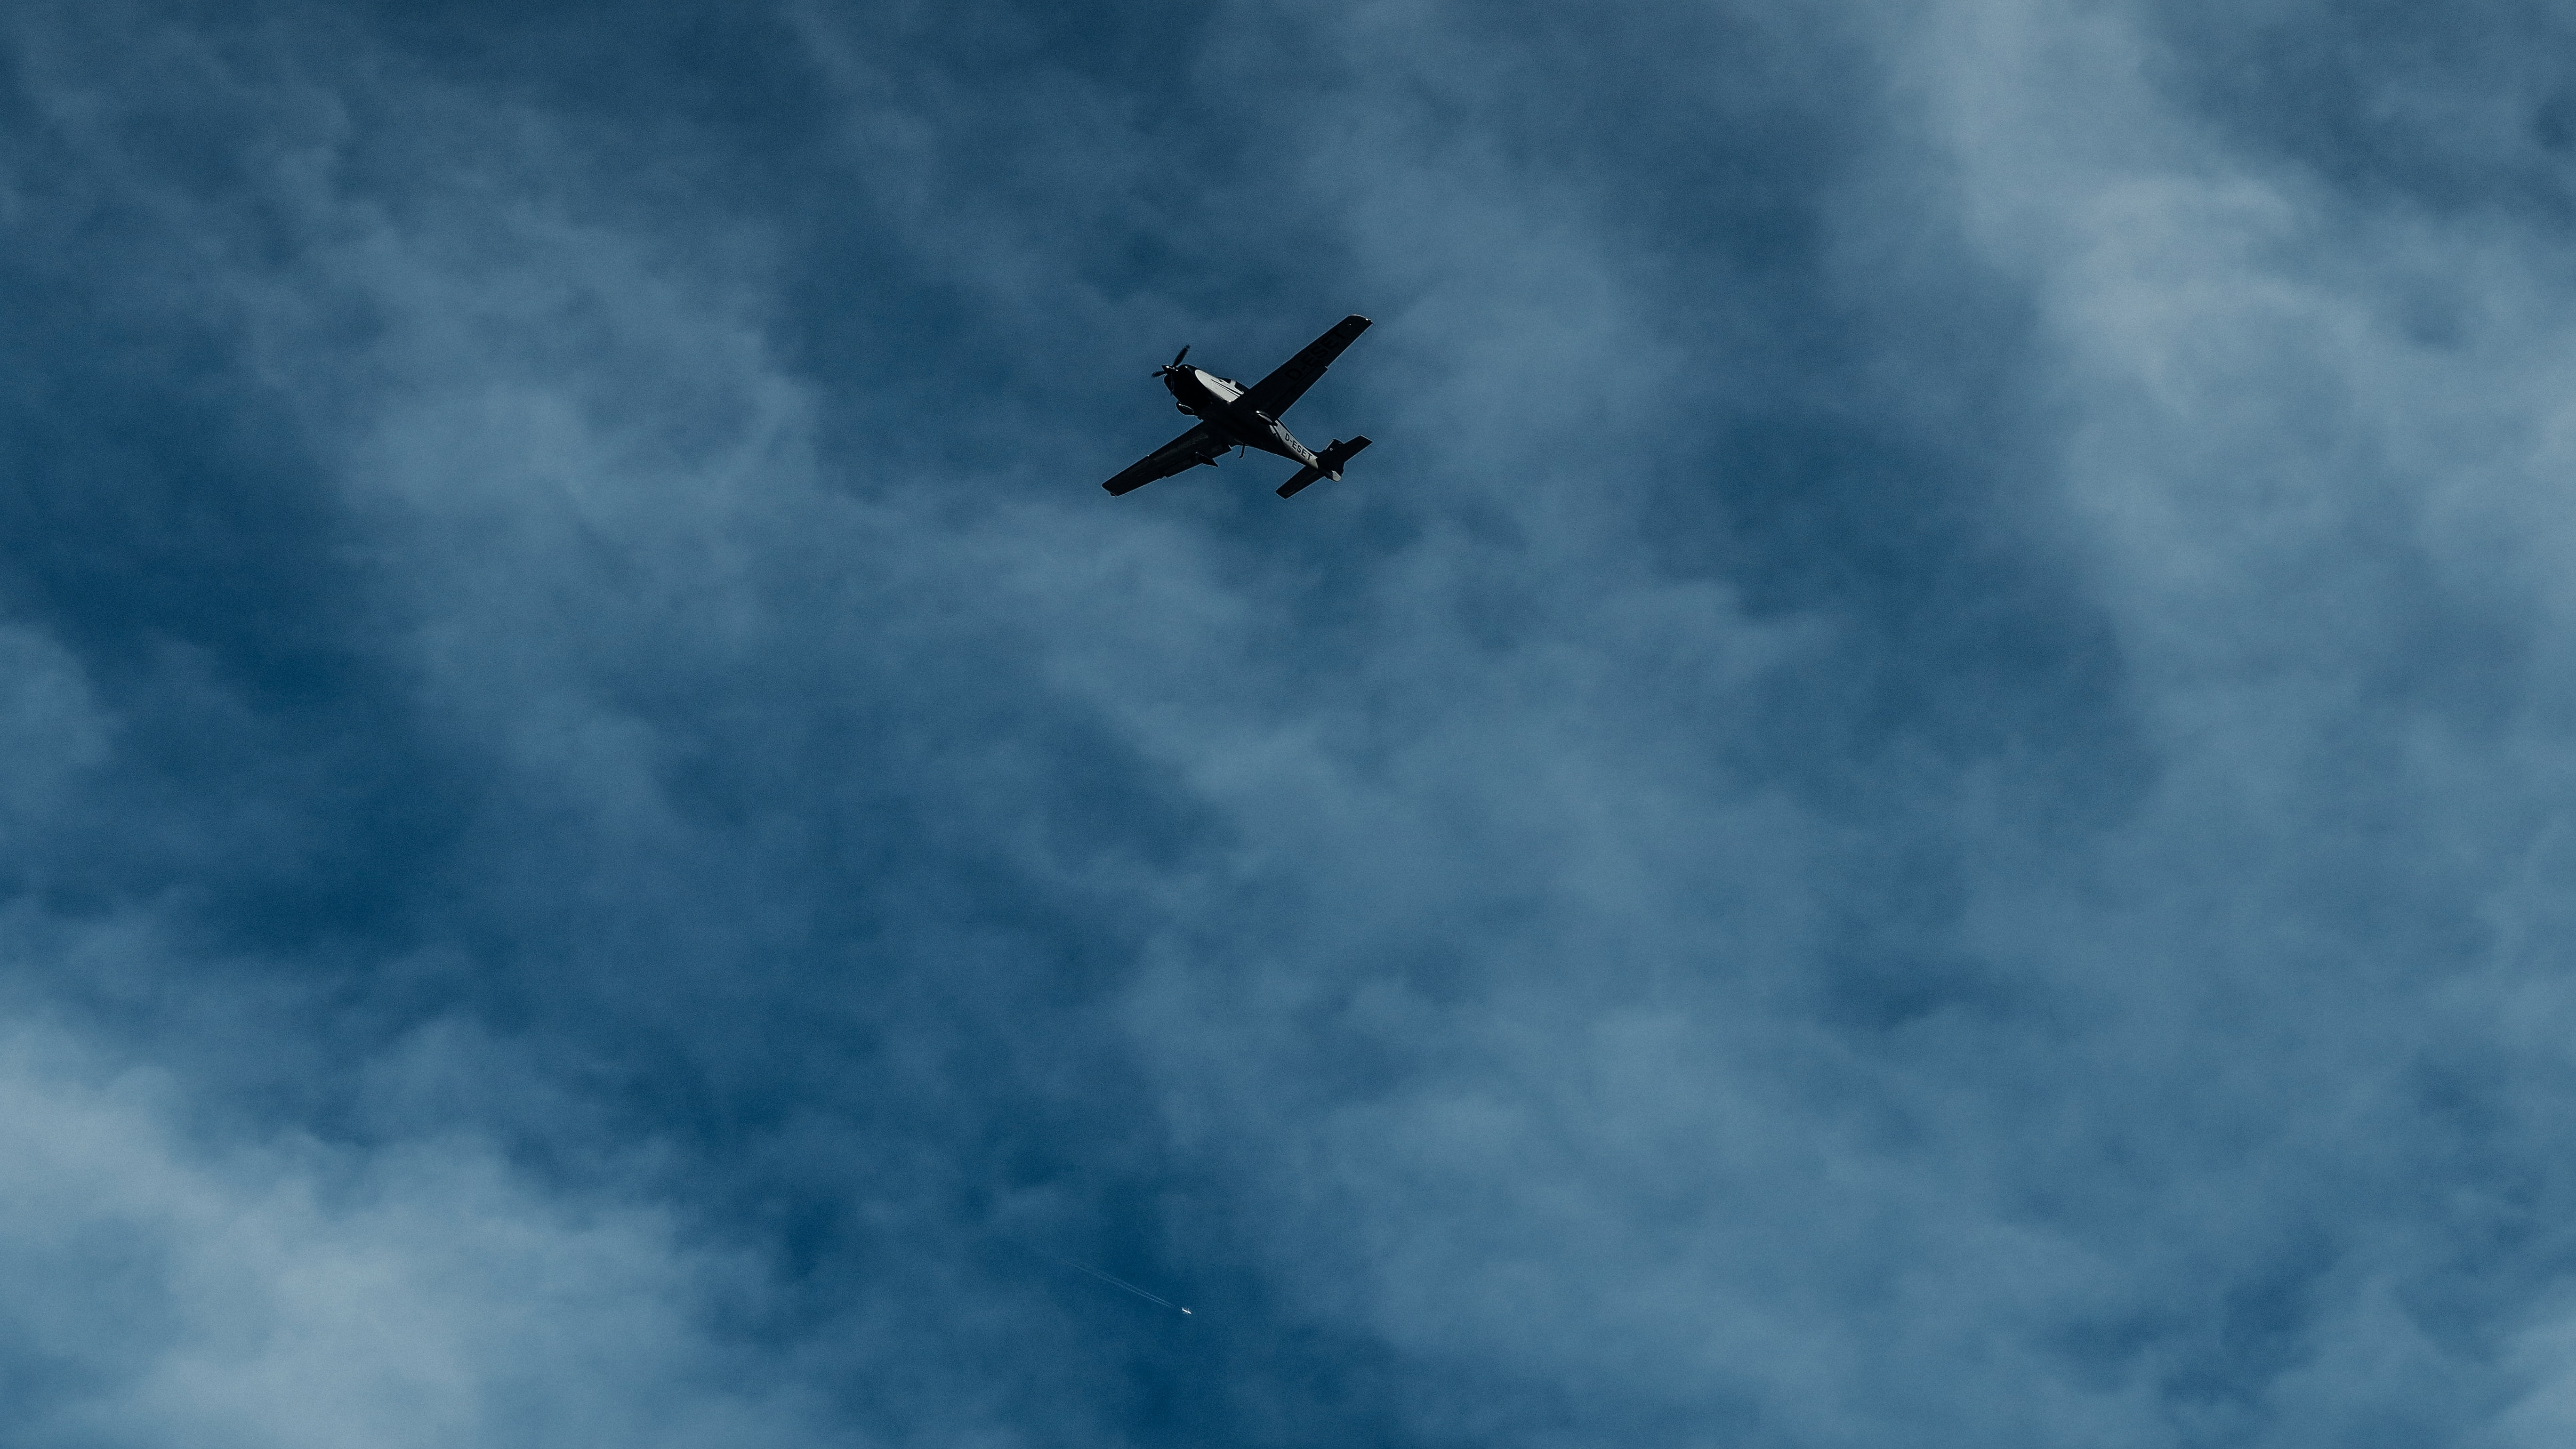 silhouette of airplane flying at daytime